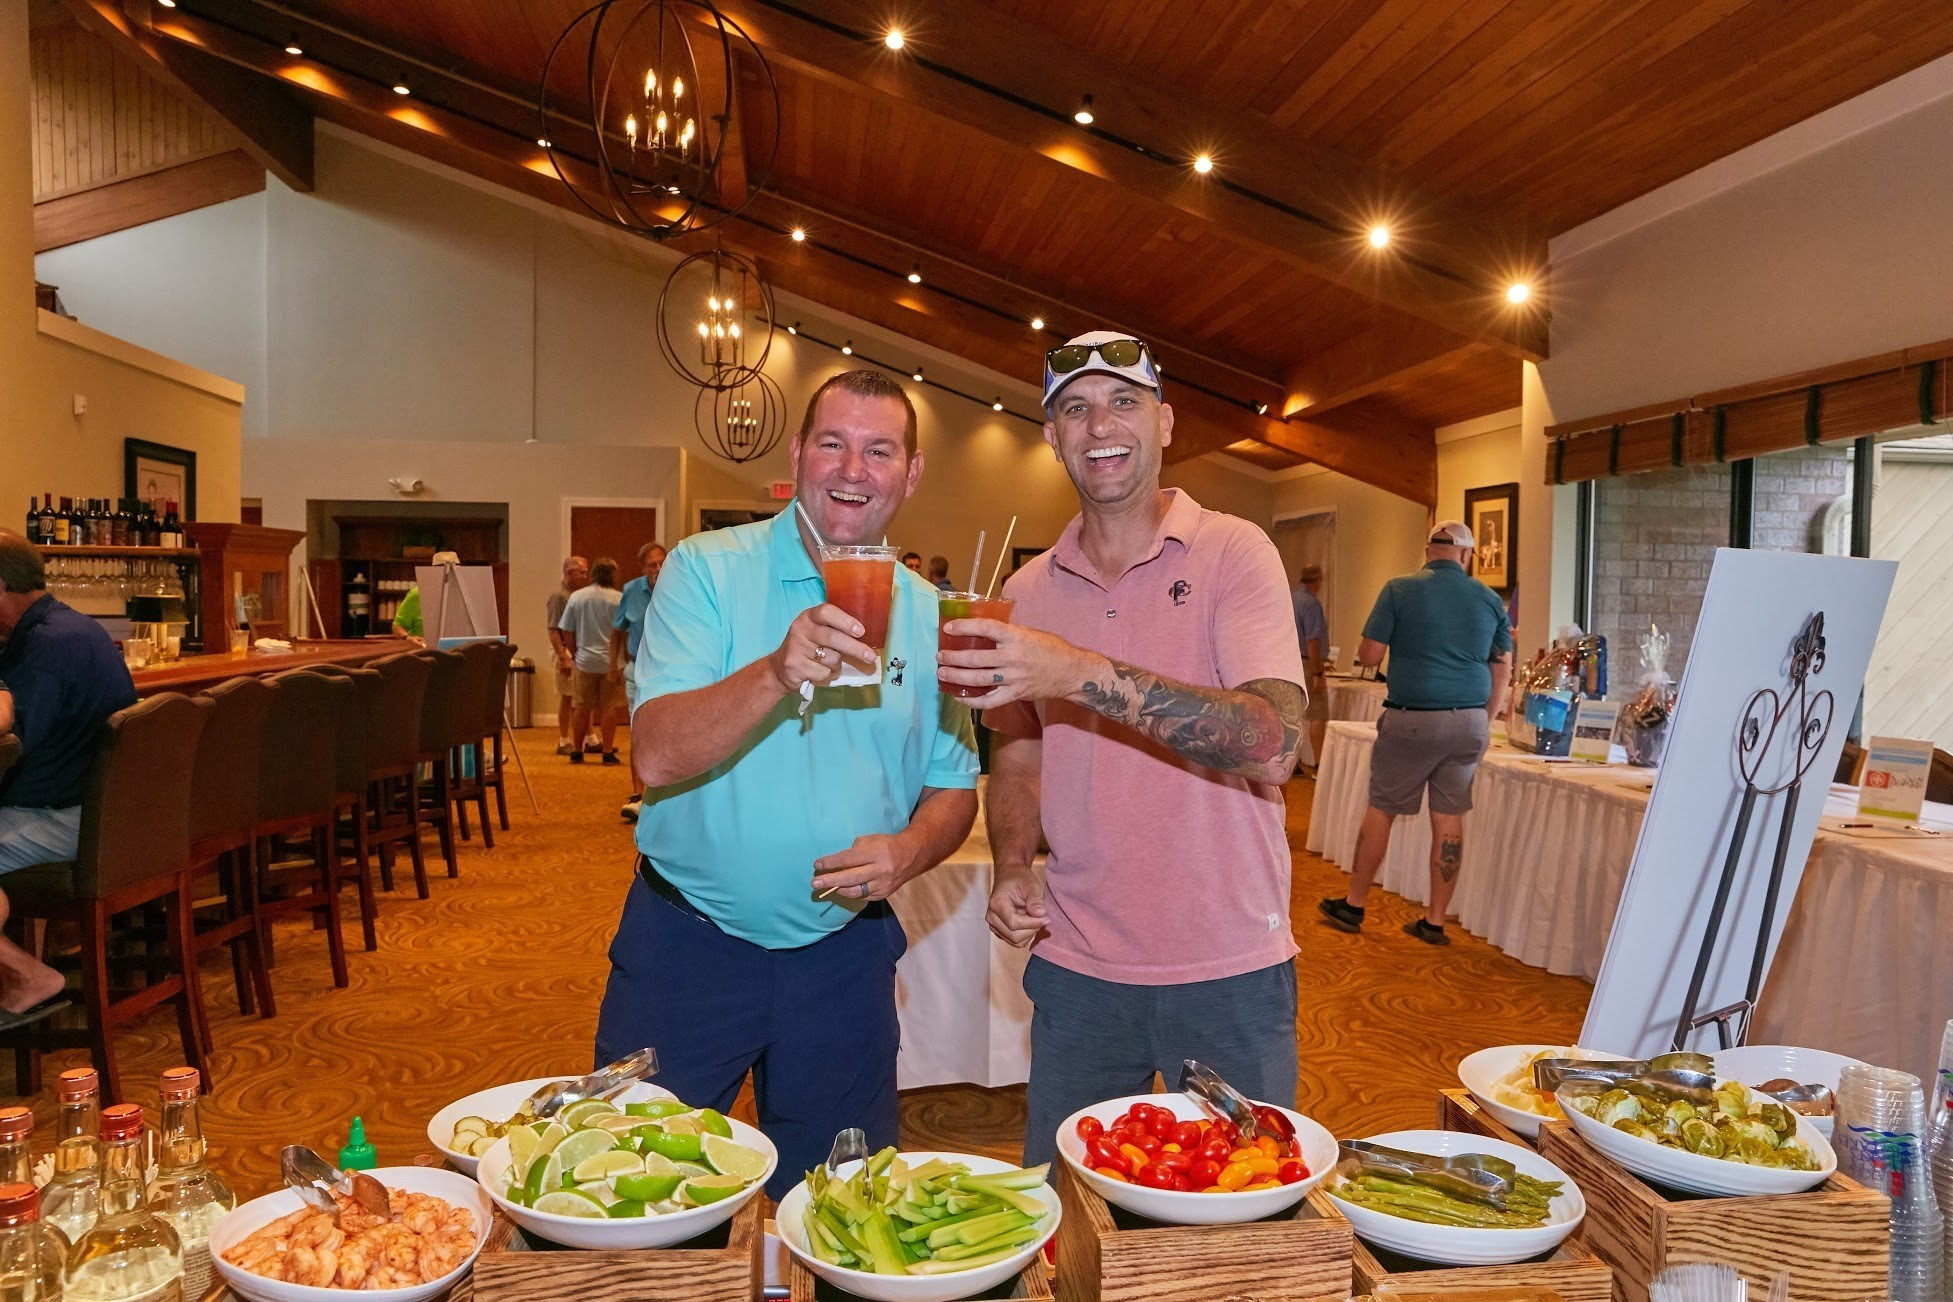 11th Annual Kroeschell Charity Golf Outing                       September 13th, 2021 gallery image #7